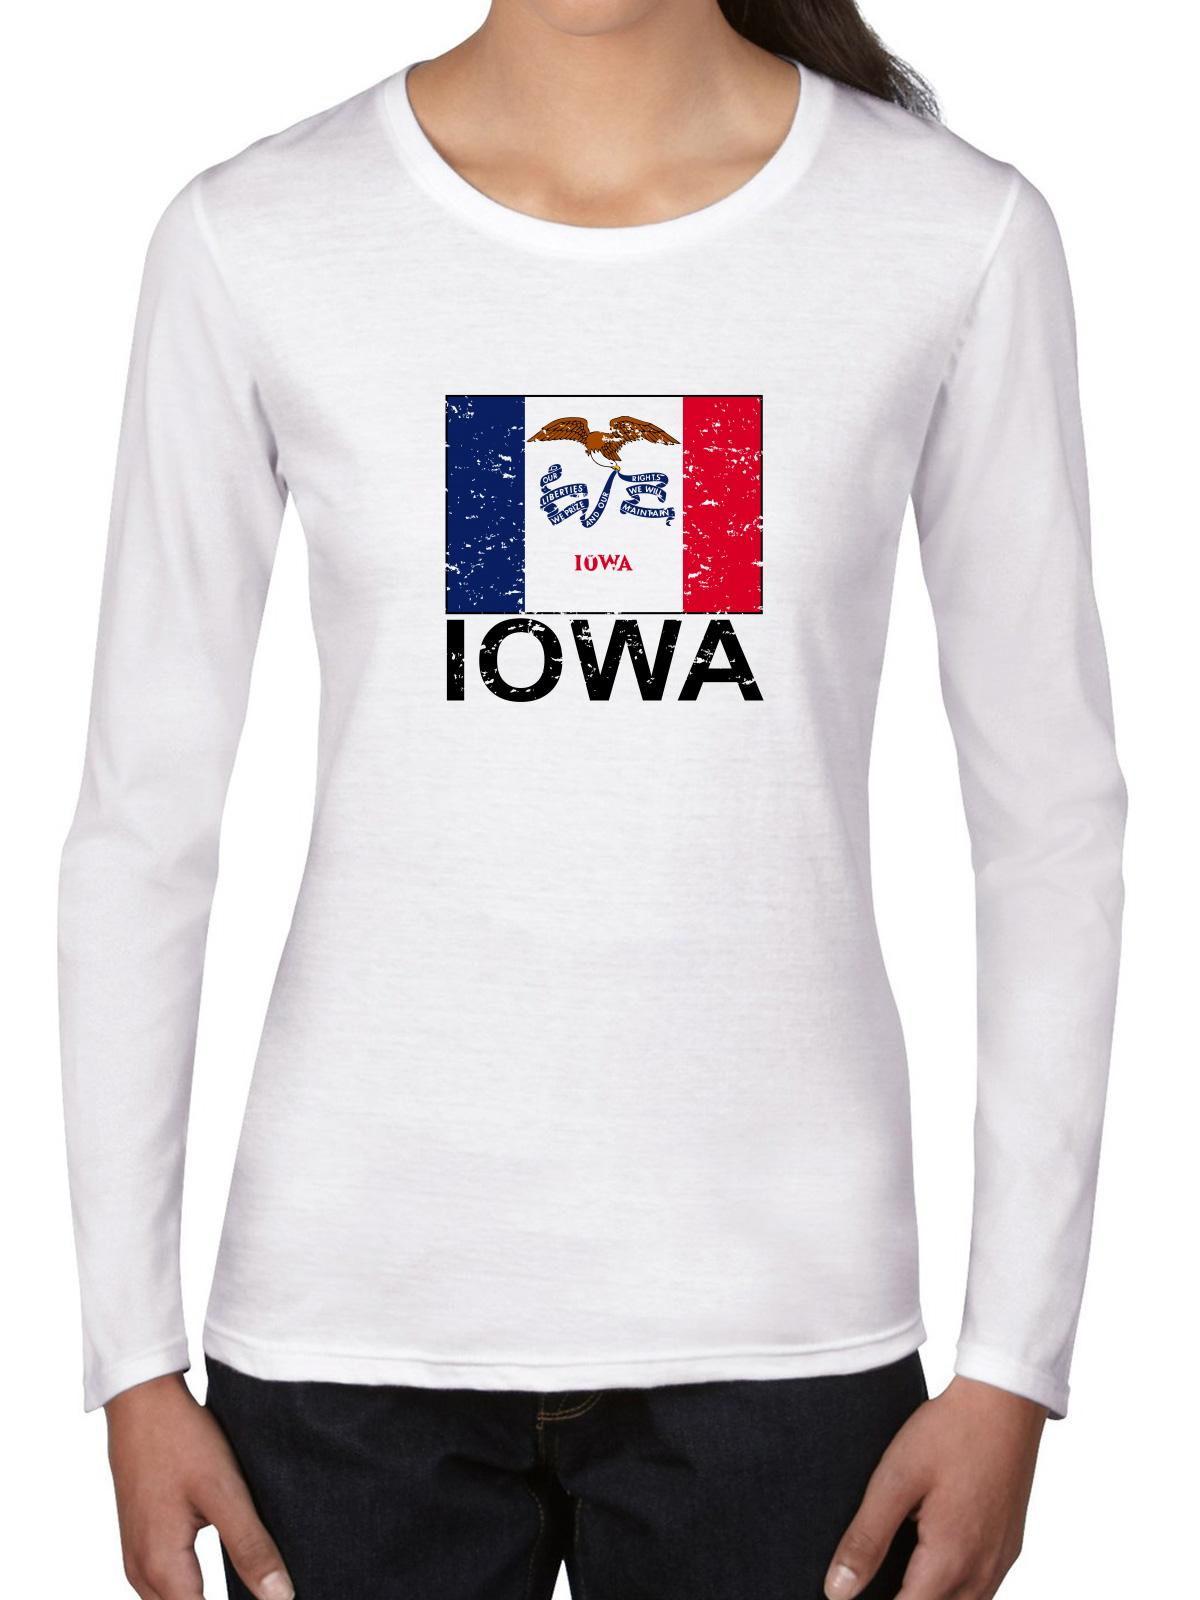 Iowa State Flag Special Vintage Edition Women's Long Sleeve T-Shirt by Hollywood Thread